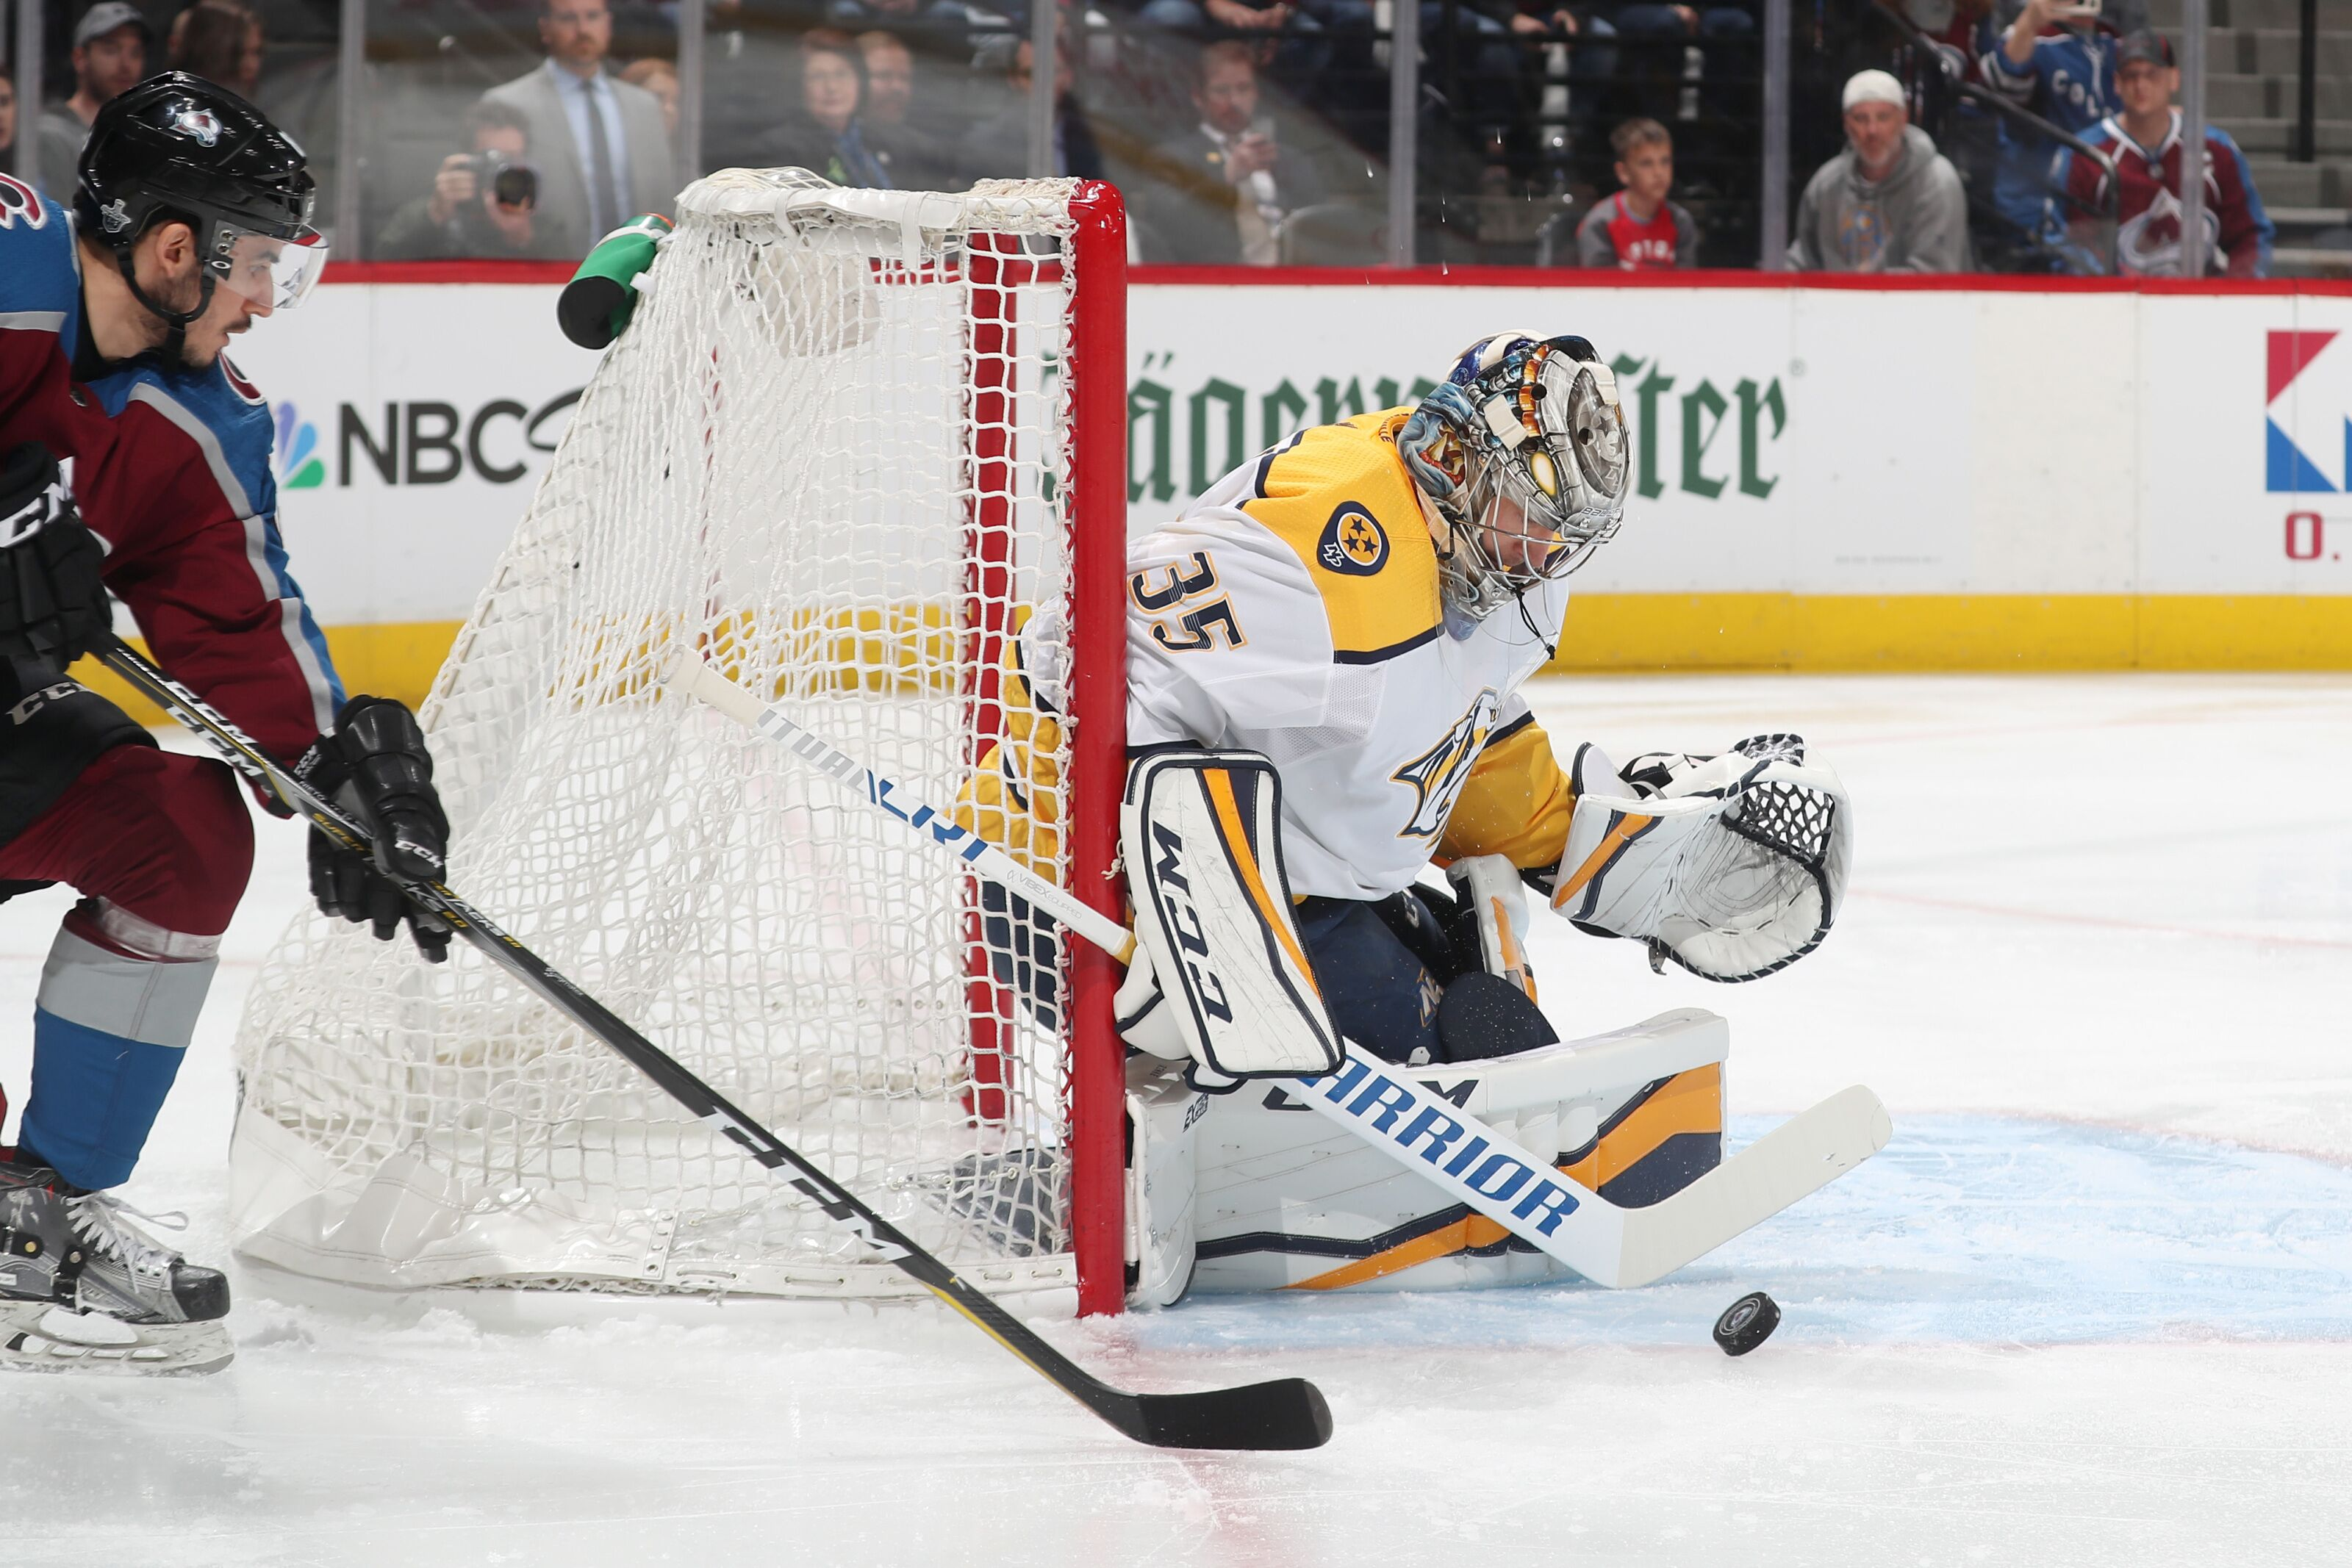 947258160-nashville-predators-v-colorado-avalanche-game-three.jpg